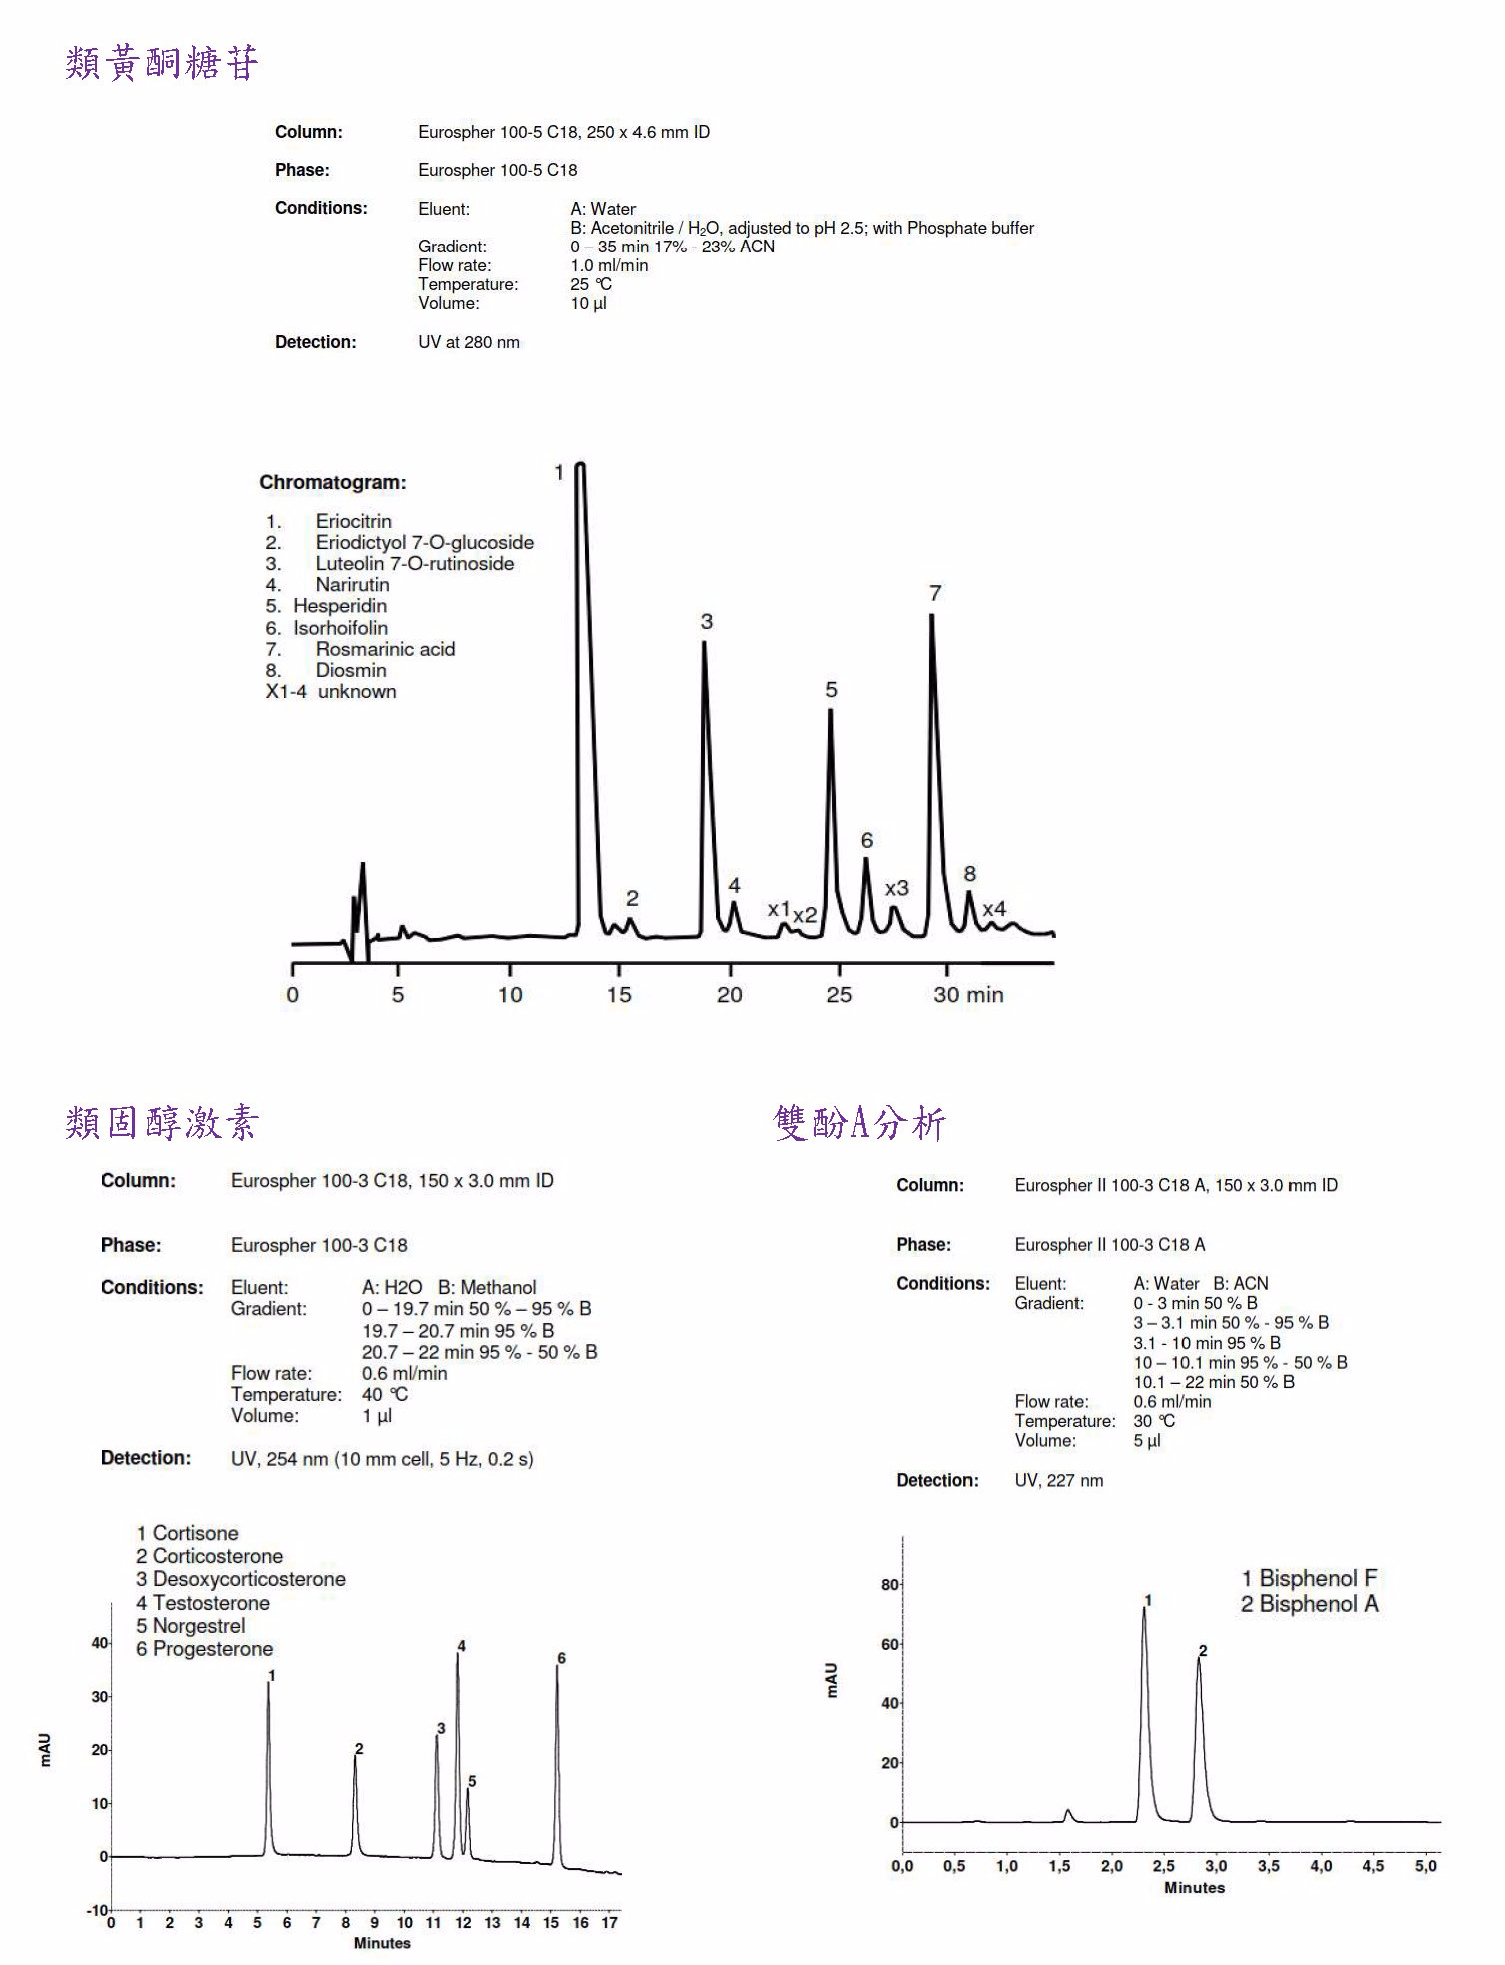 azura_hplc_plus-application.jpg